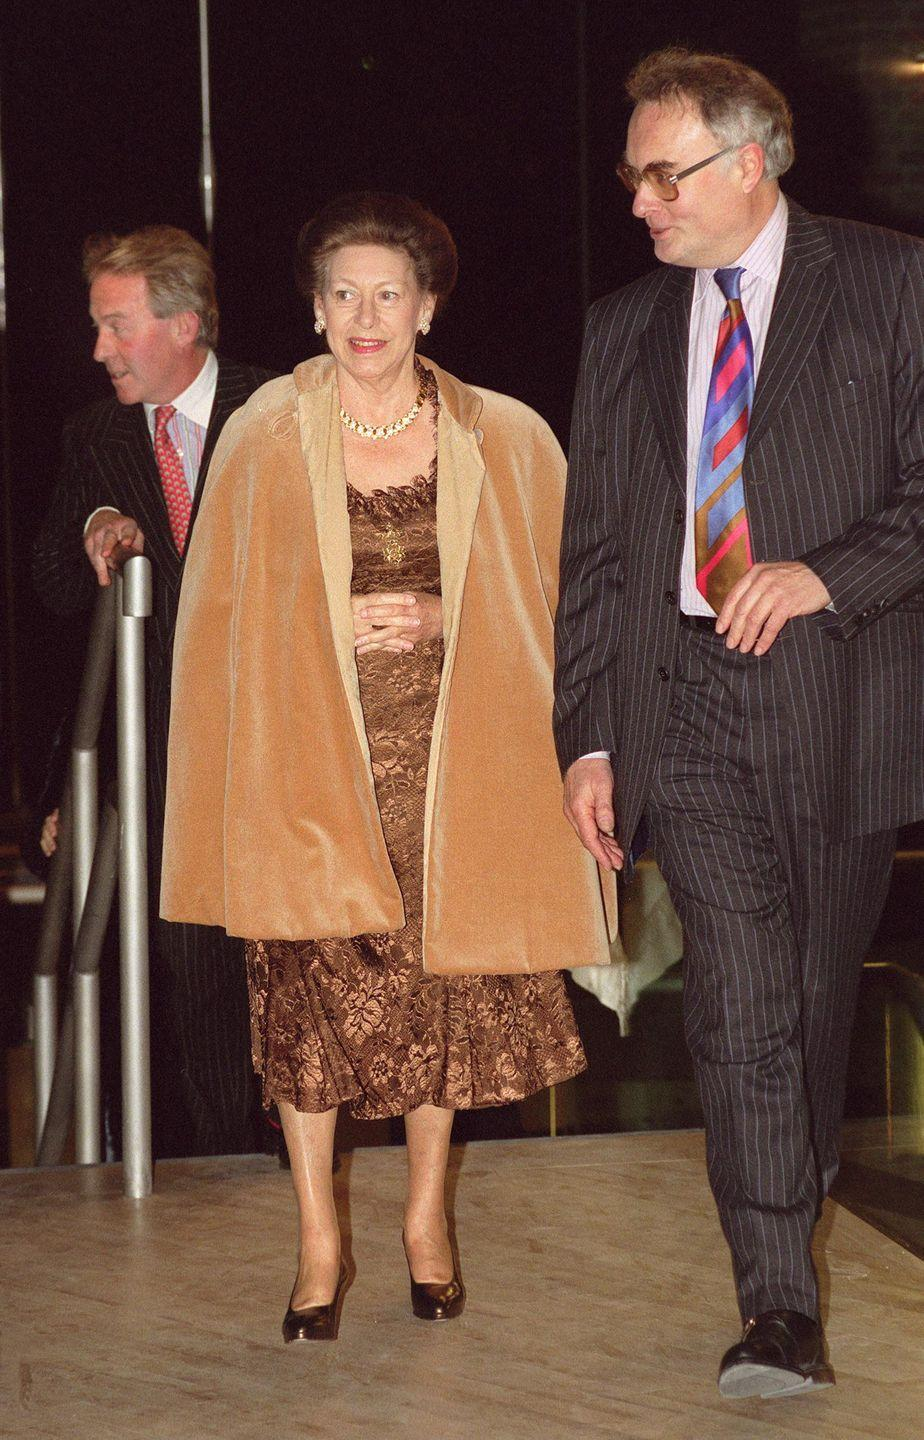 <p>Princess Margaret wore a look reminiscent of Pocahontas's for an evening at the Royal Ballet in 1998. The Queen's younger sister wore a brown brocade mid-length dress and covered up with a camel coat. </p>